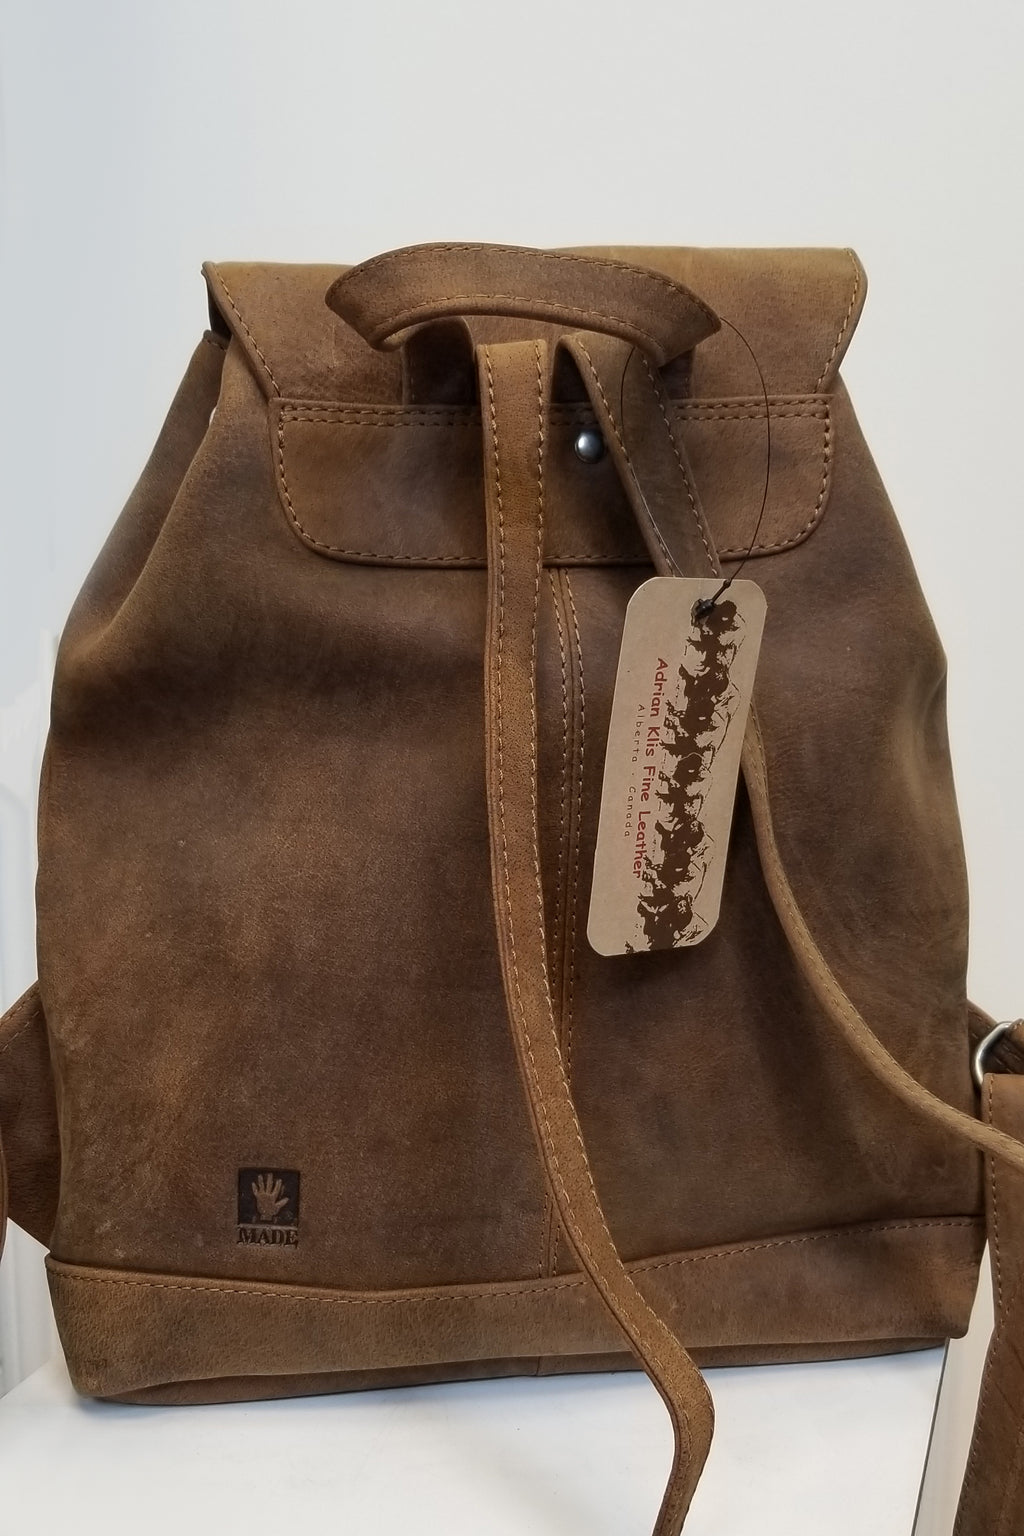 Adrian Klis Backpack 2171, Buffalo Leather - Blue Sky Clothing Co